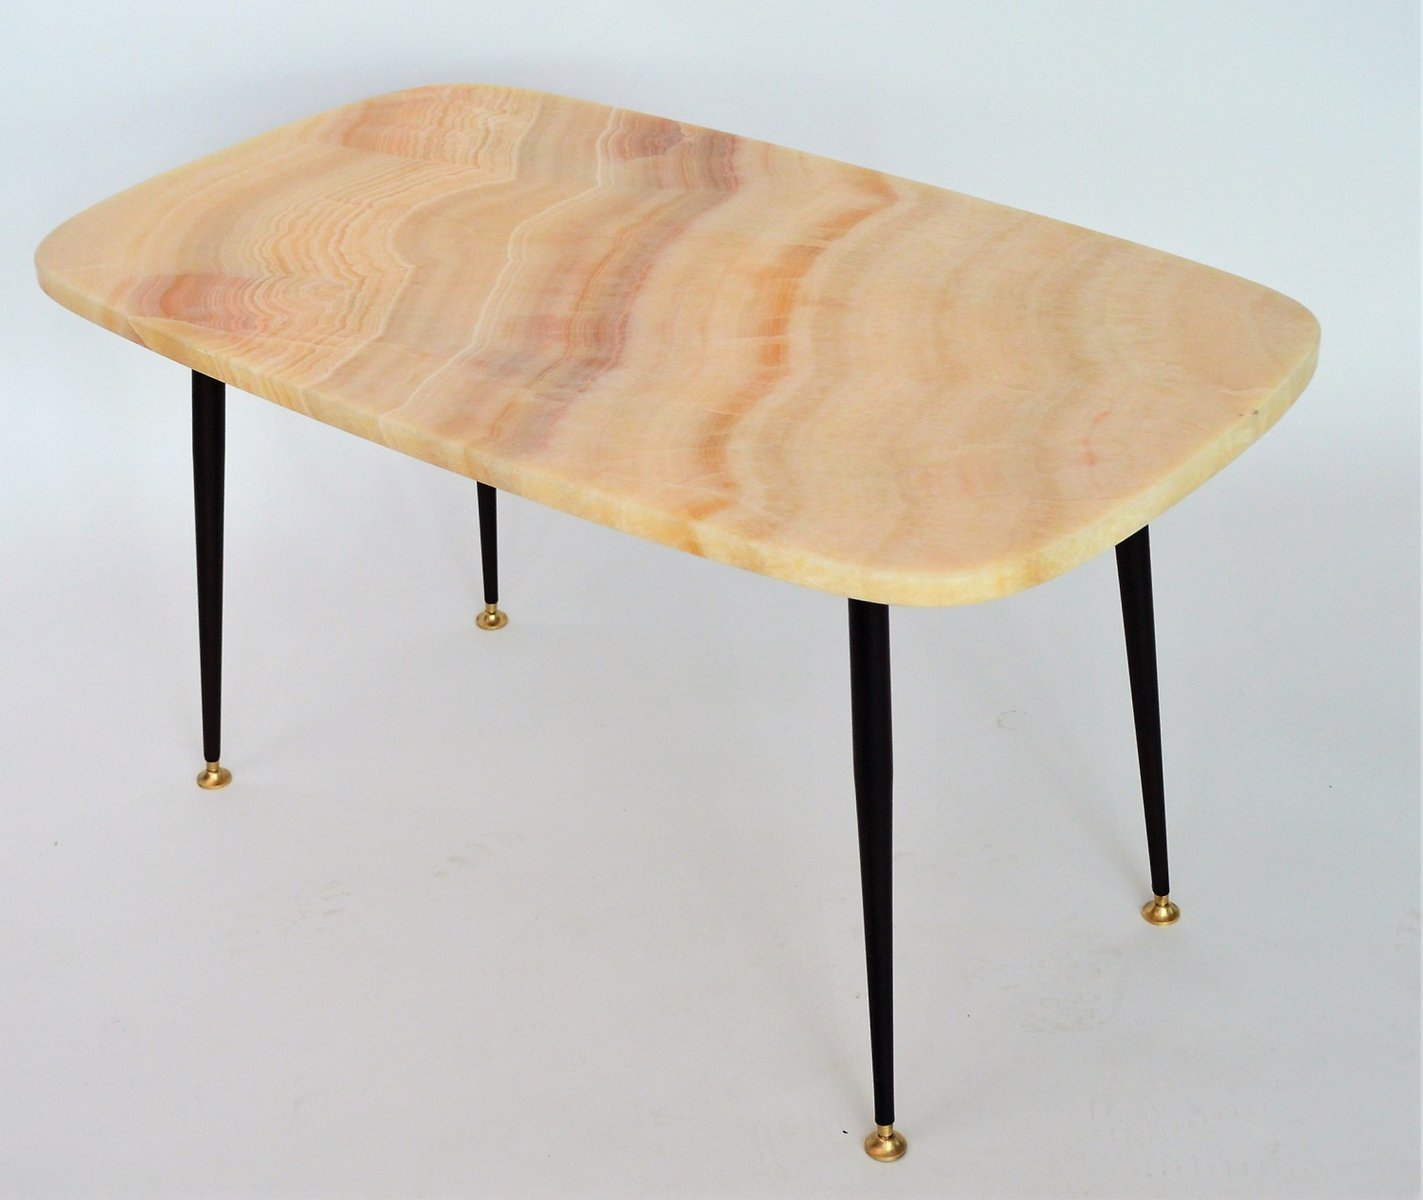 Marble Coffee Table Australia: Pink Marble Top Coffee Table Or Side Table, 1950s For Sale